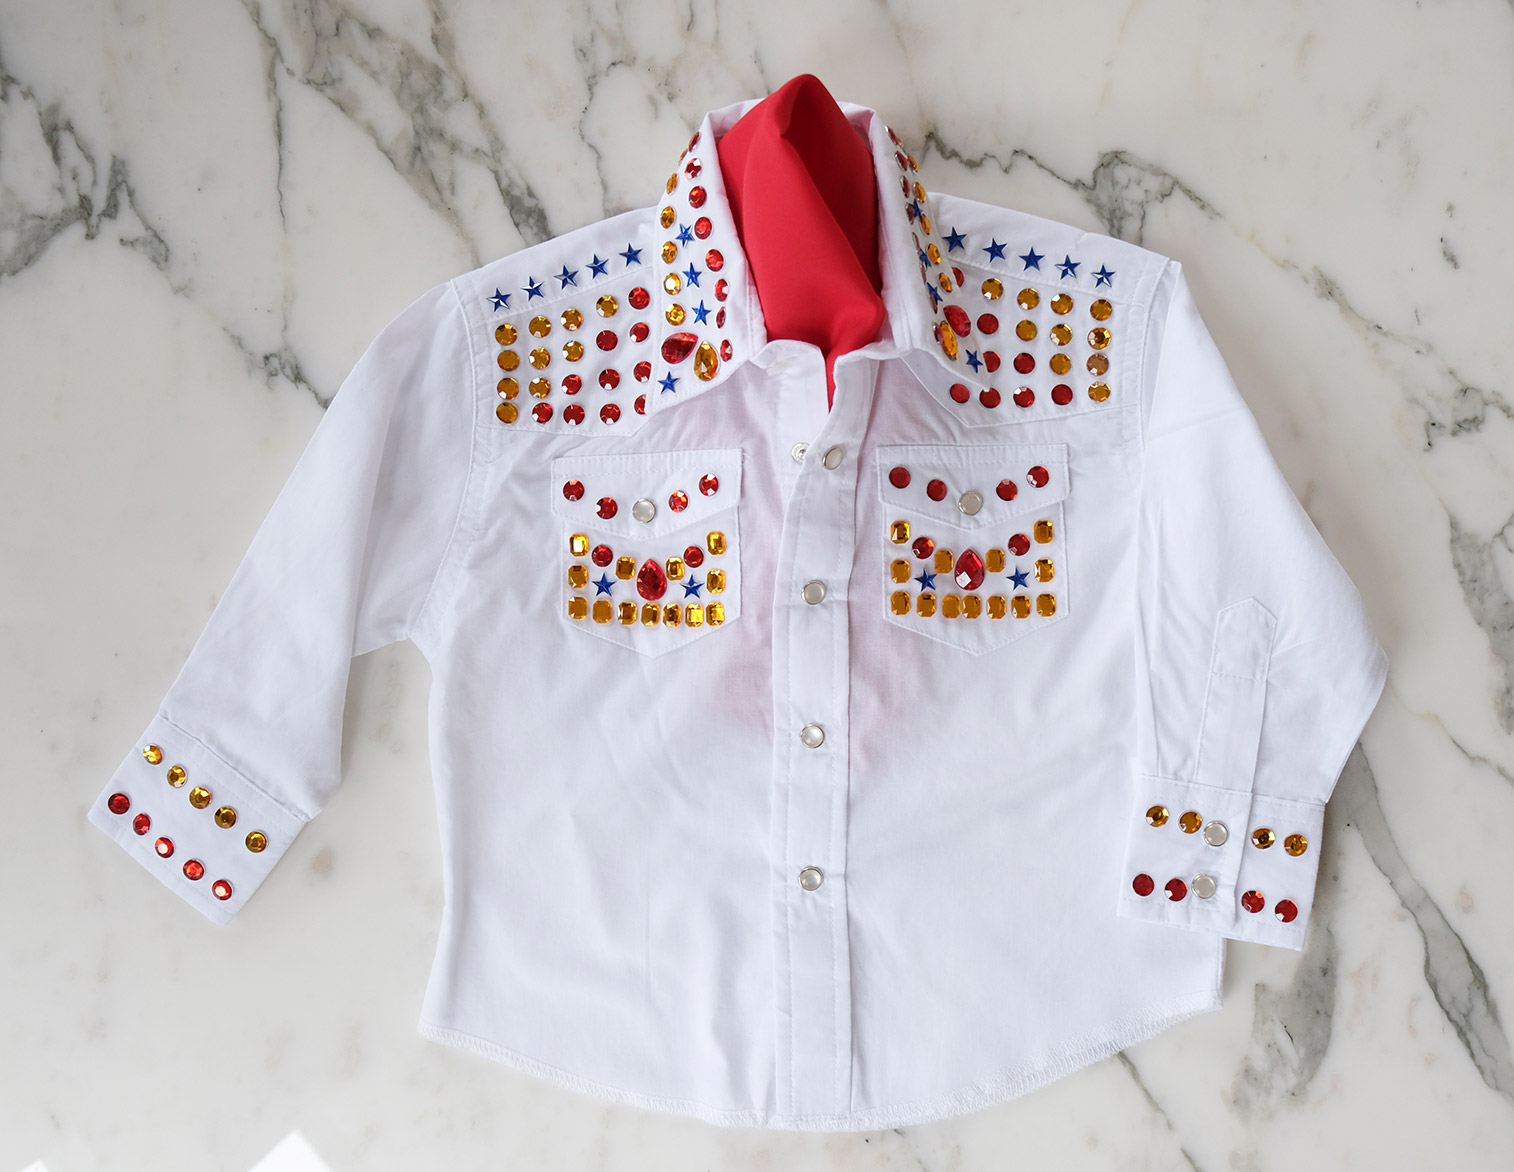 DIY Elivs Shirt for a Toddler